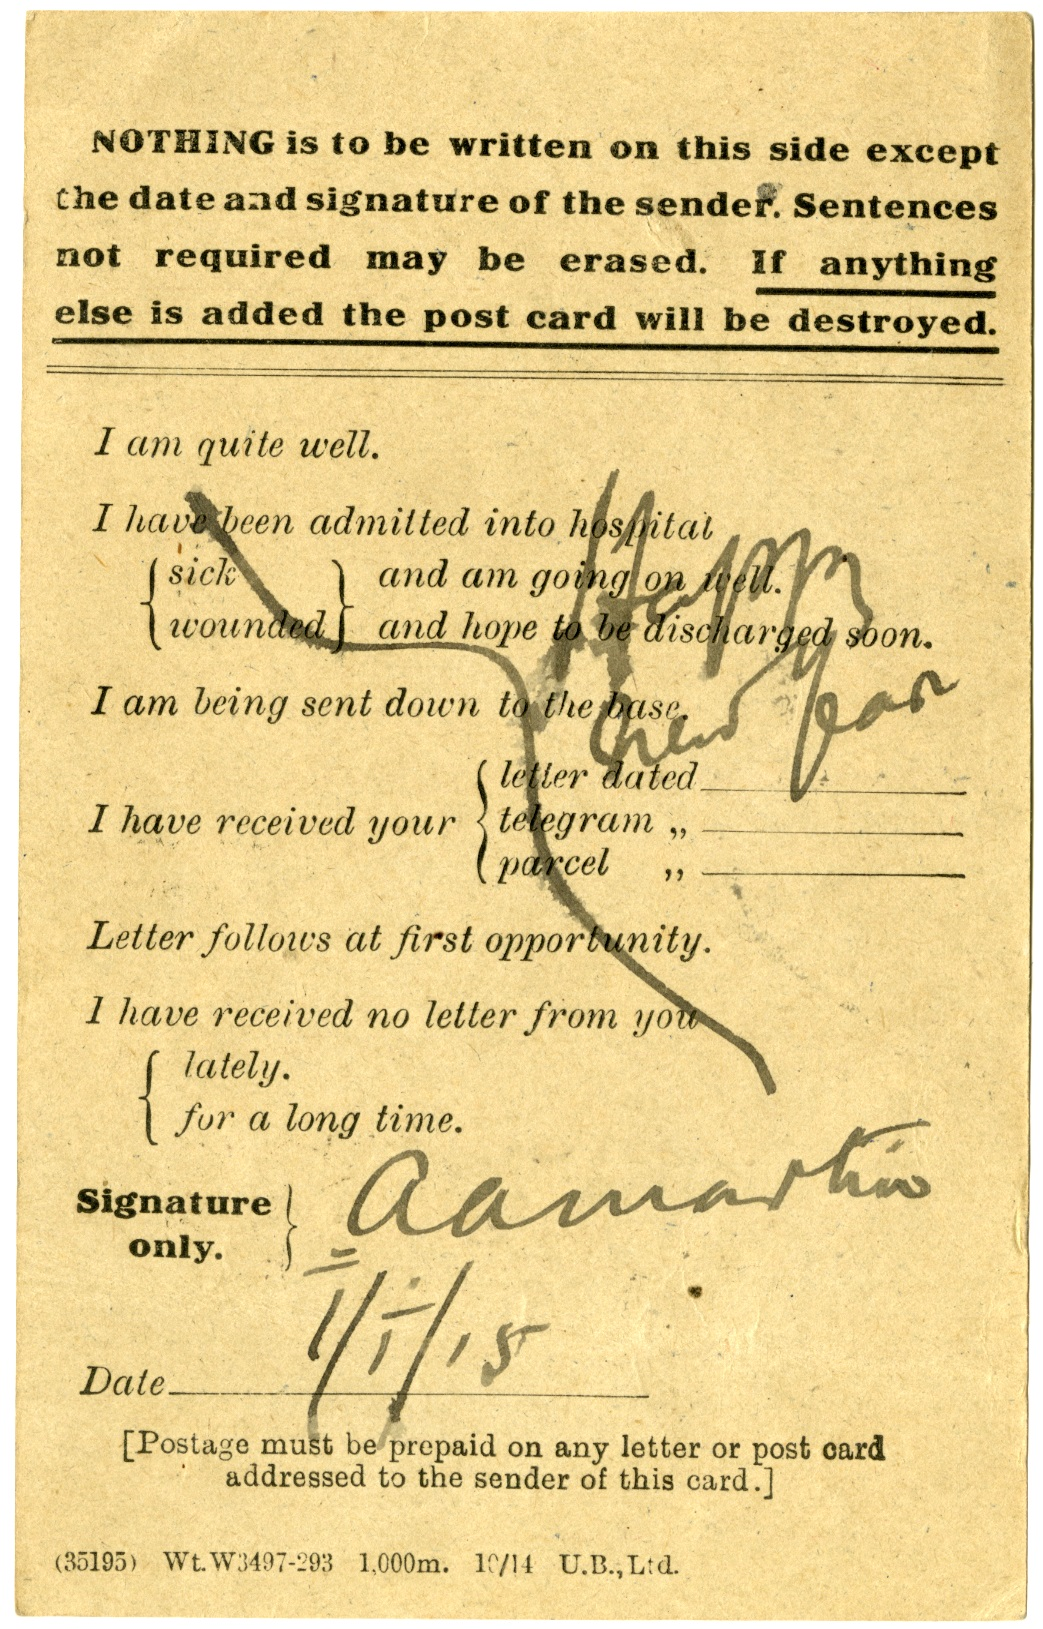 """Note that Dr Martin has disregarded the instructions on the postcard stating that """"Nothing is to be written on this side except the date and signature of the sender"""" with his message of a Happy New Year,"""